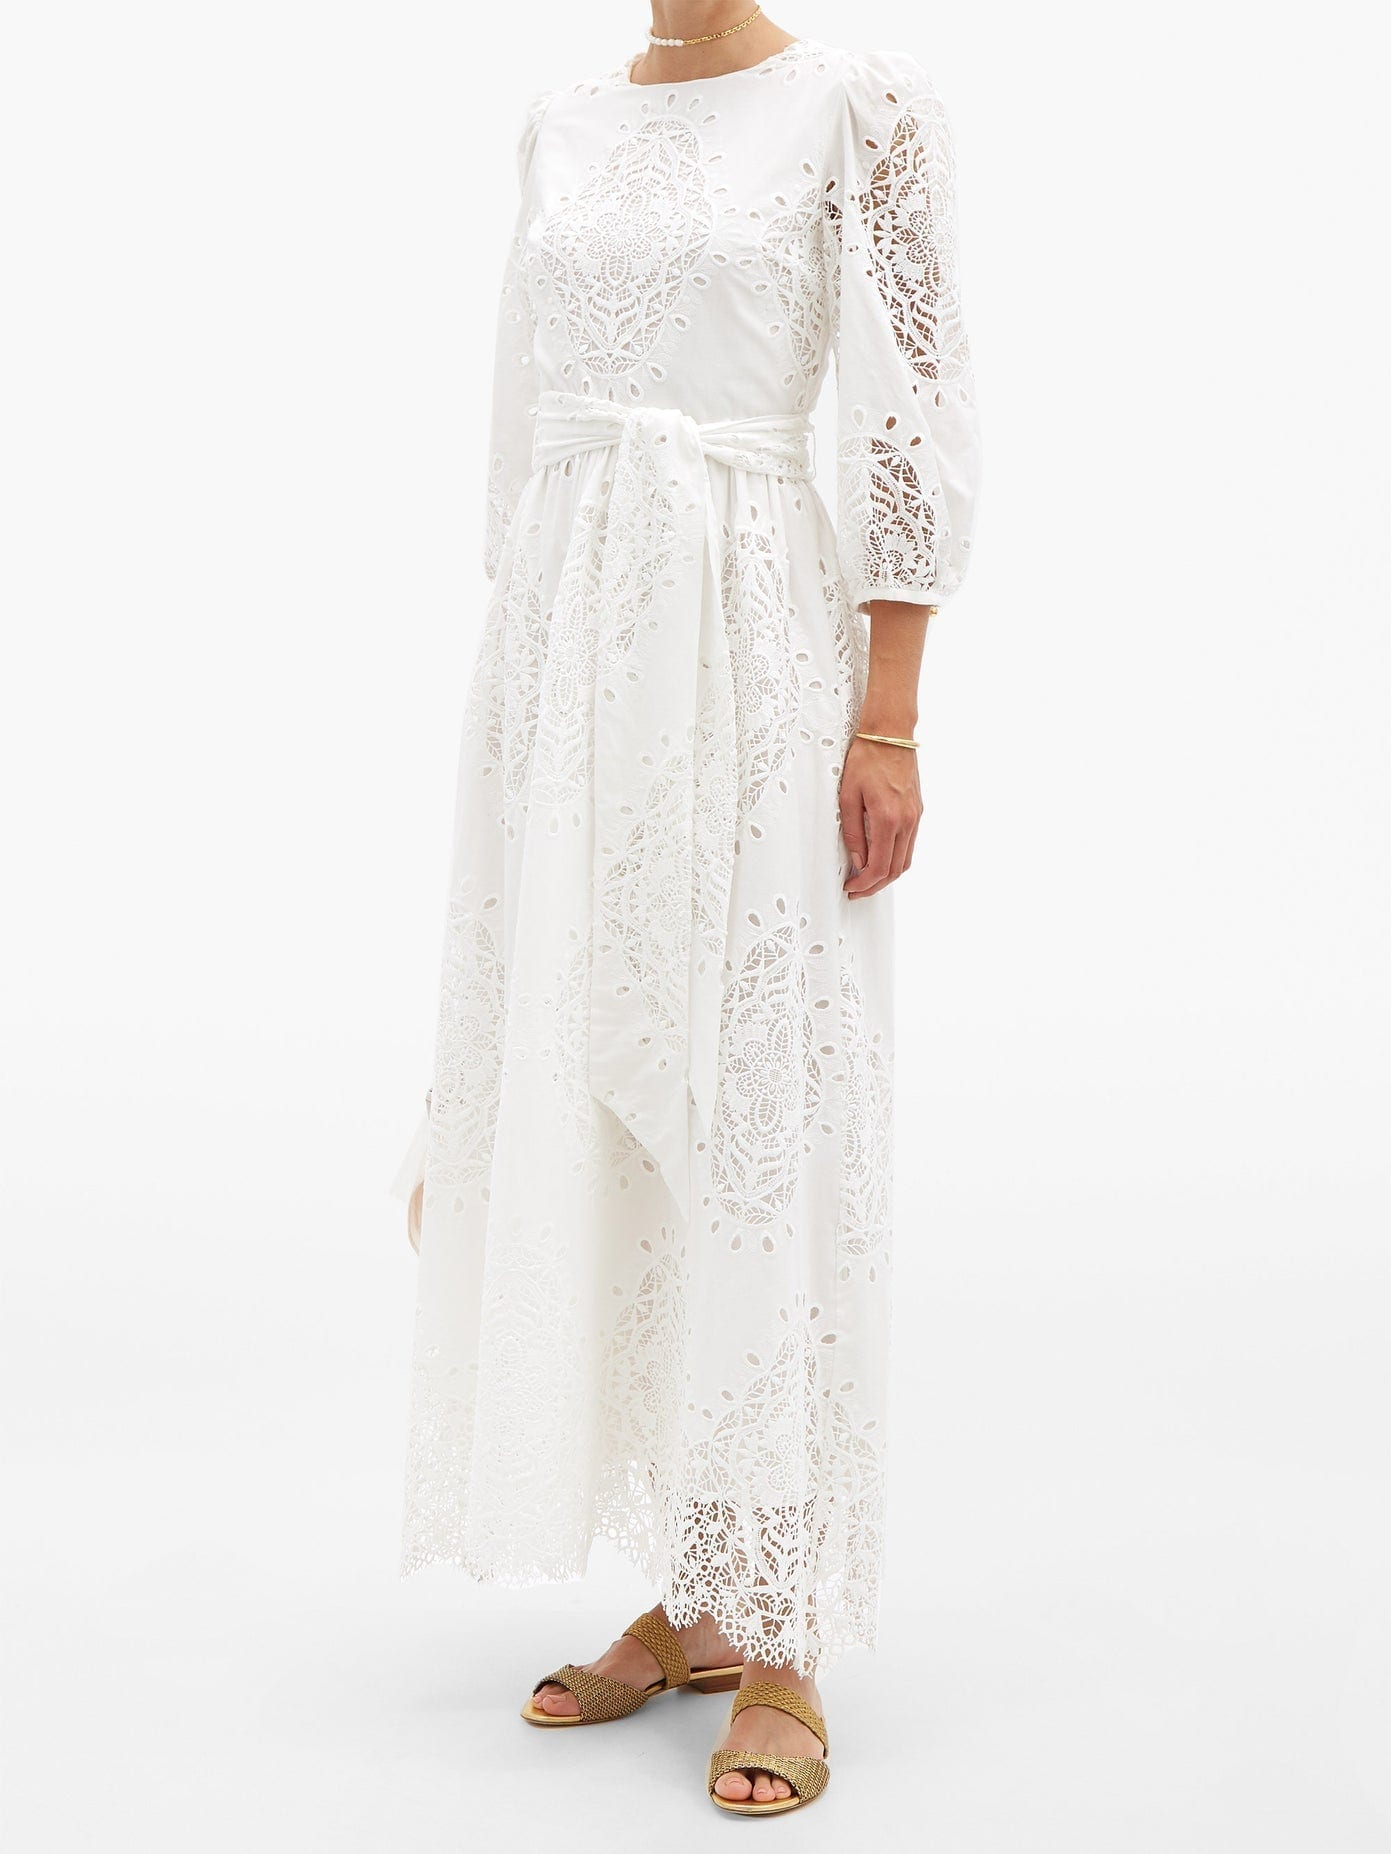 BORGO DE NOR Constance Broderie-angalise Belted Midi Dress